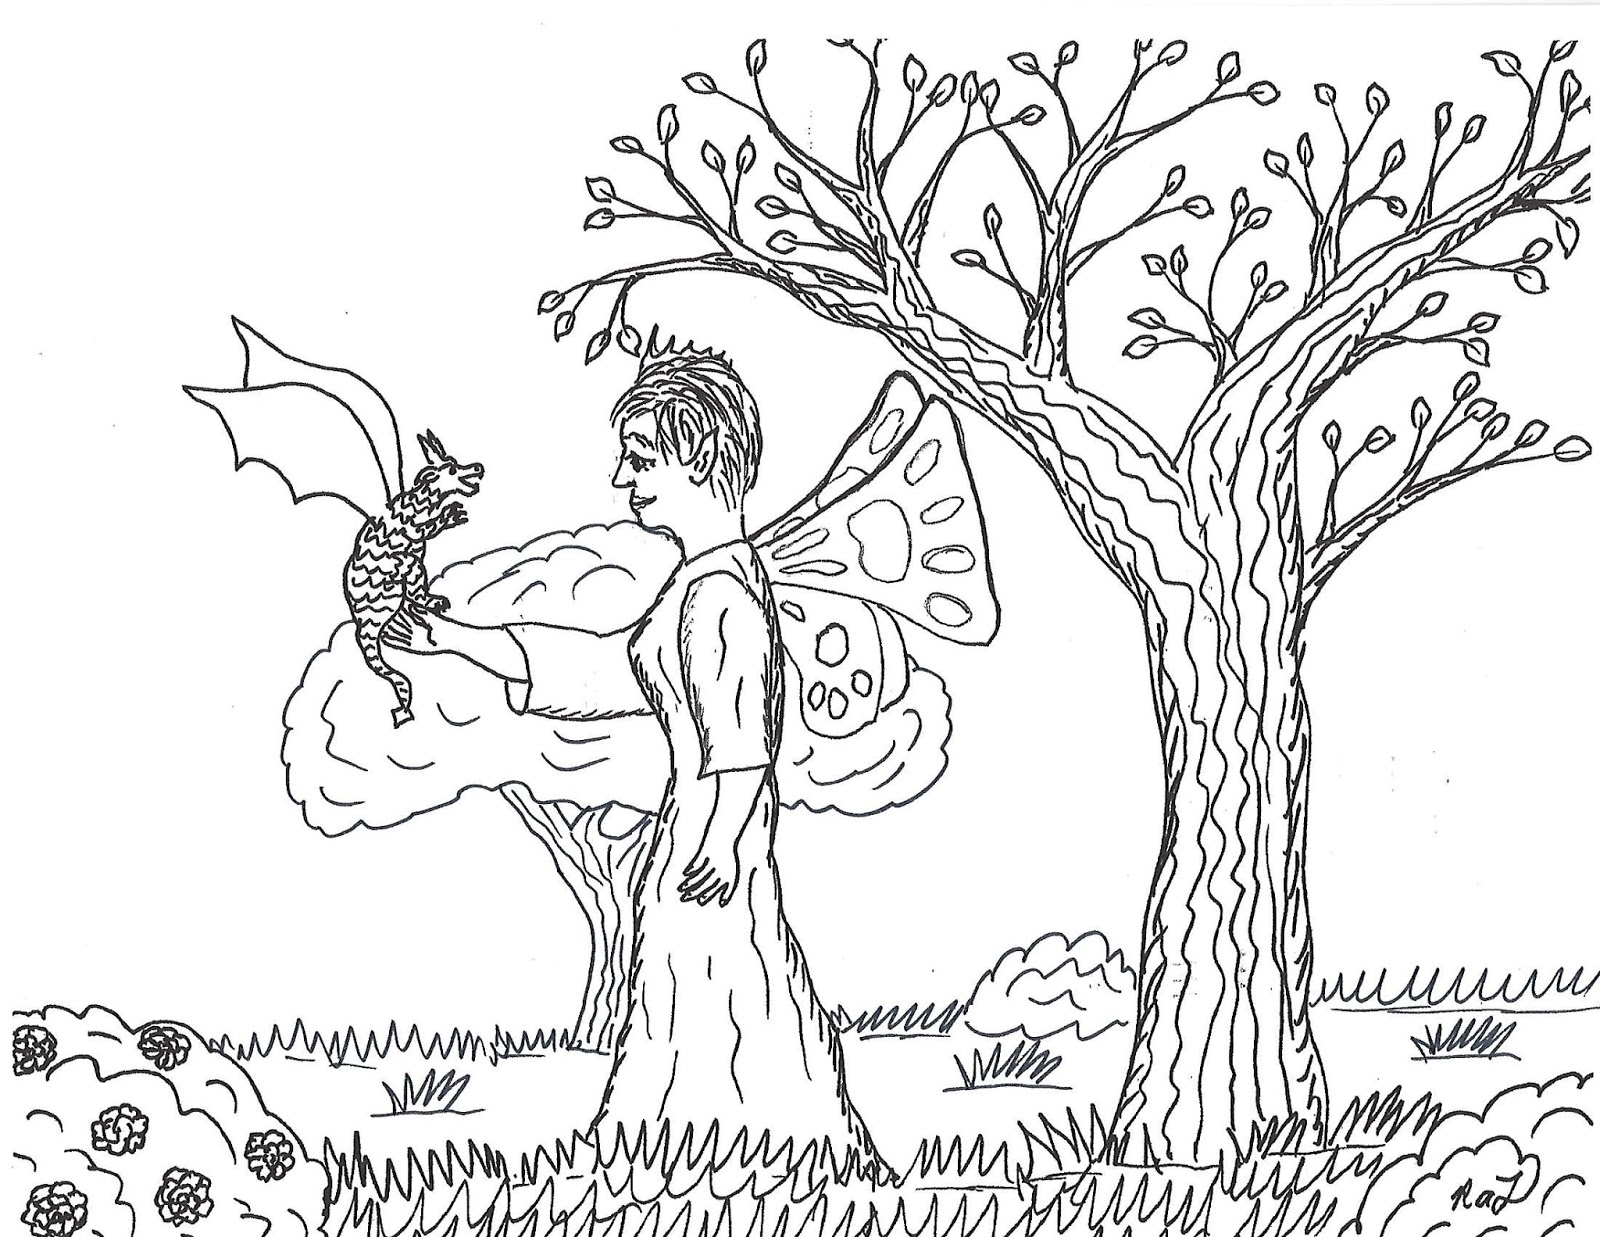 Robin S Great Coloring Pages Eleanor The Fairy Queen